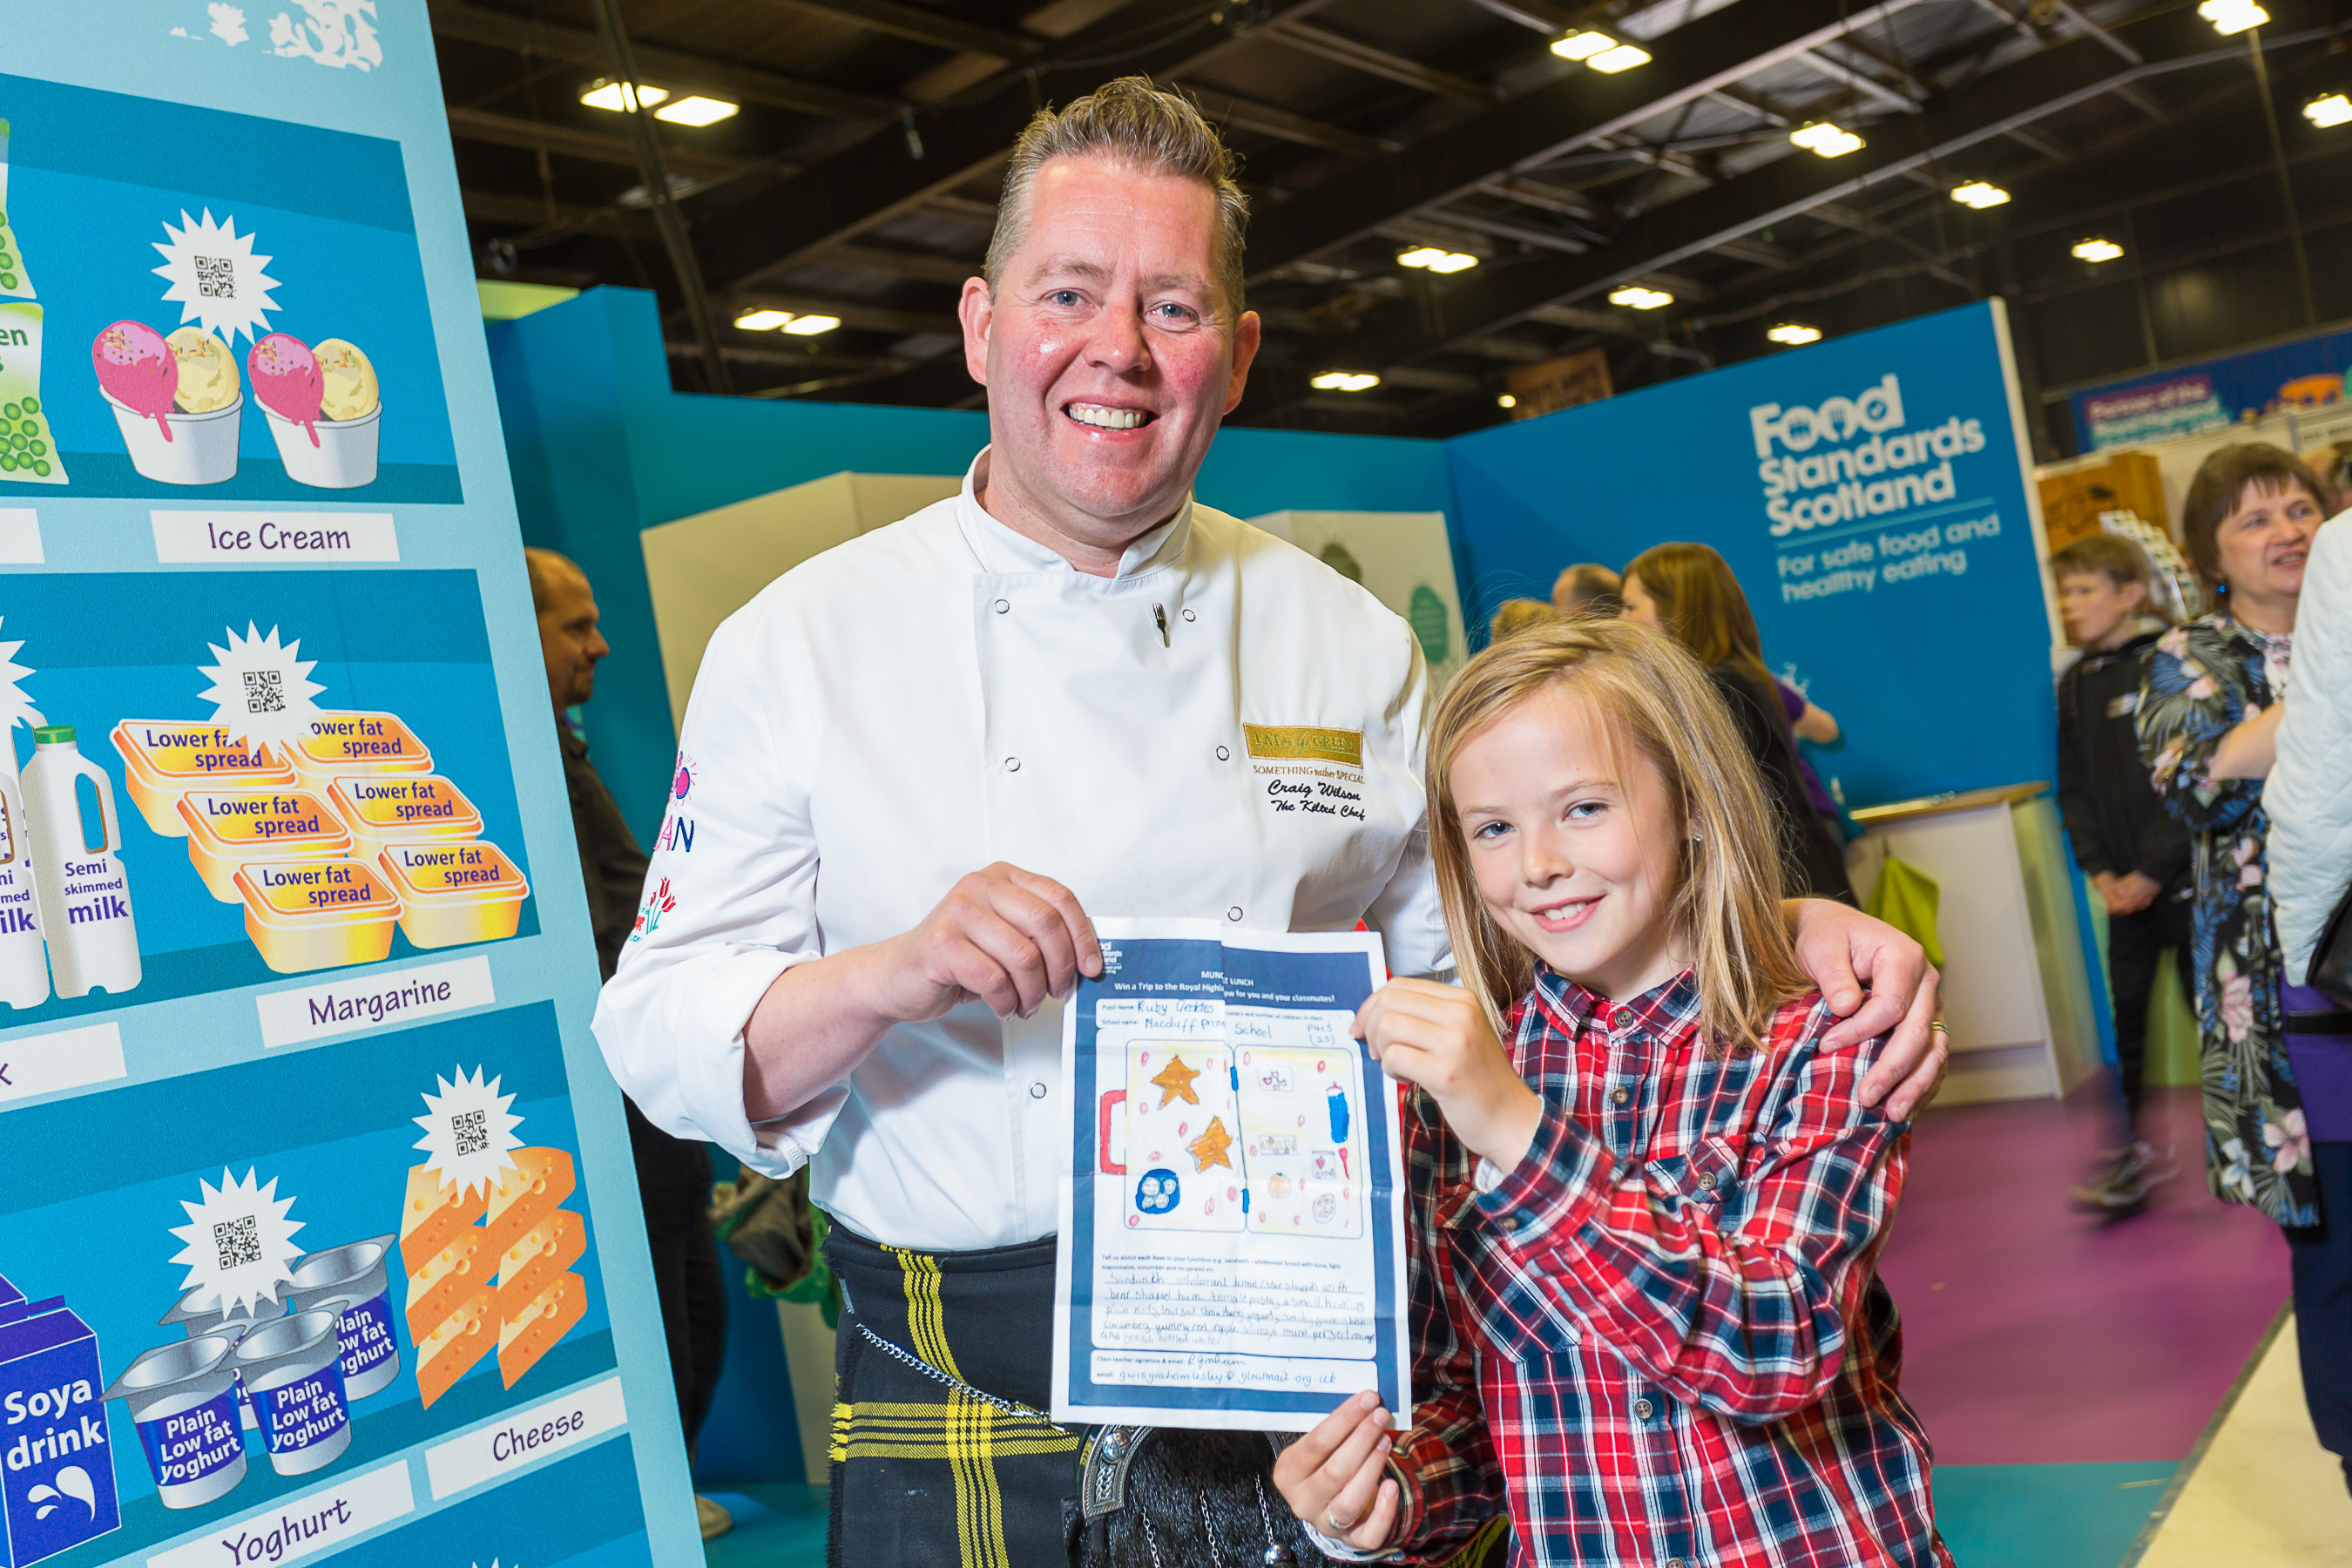 Craig Wilson (the Kilted Chef) and P4/5 Macduff Primary pupil, Ruby Geddes (10) with her winning 'Munch that Lunch' entry